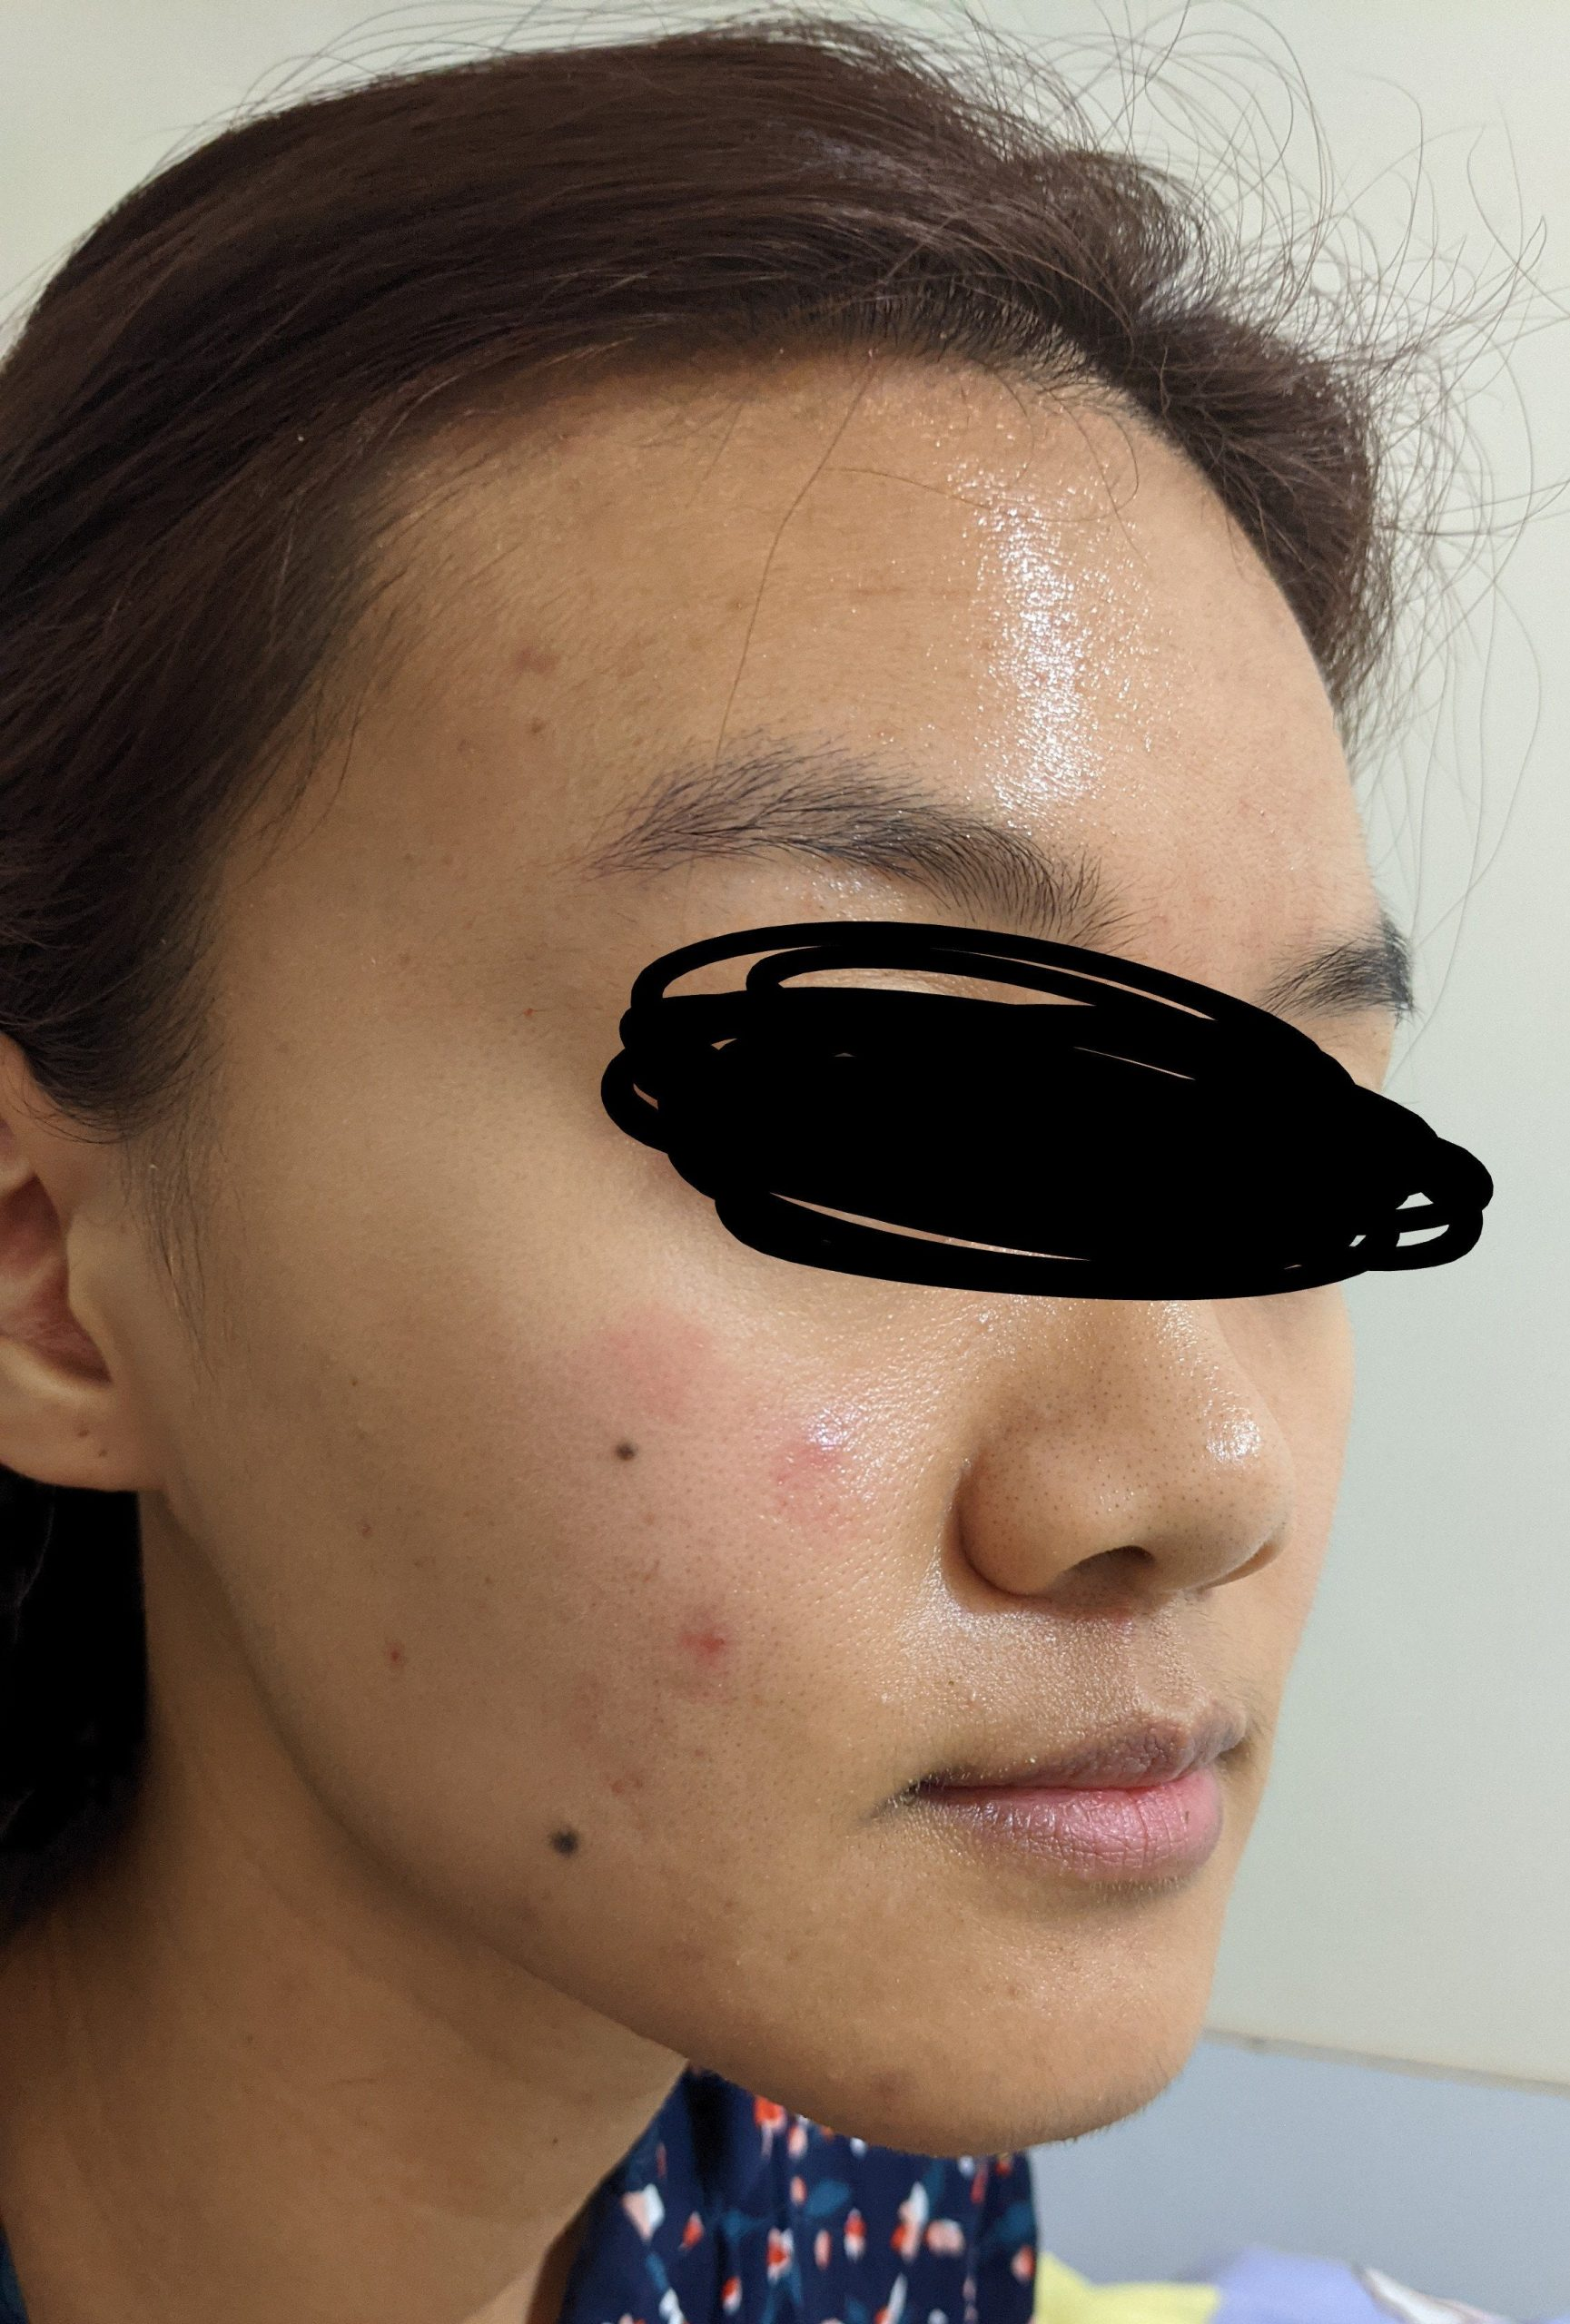 [Acne] Different acne related skincare and how to add into routine?